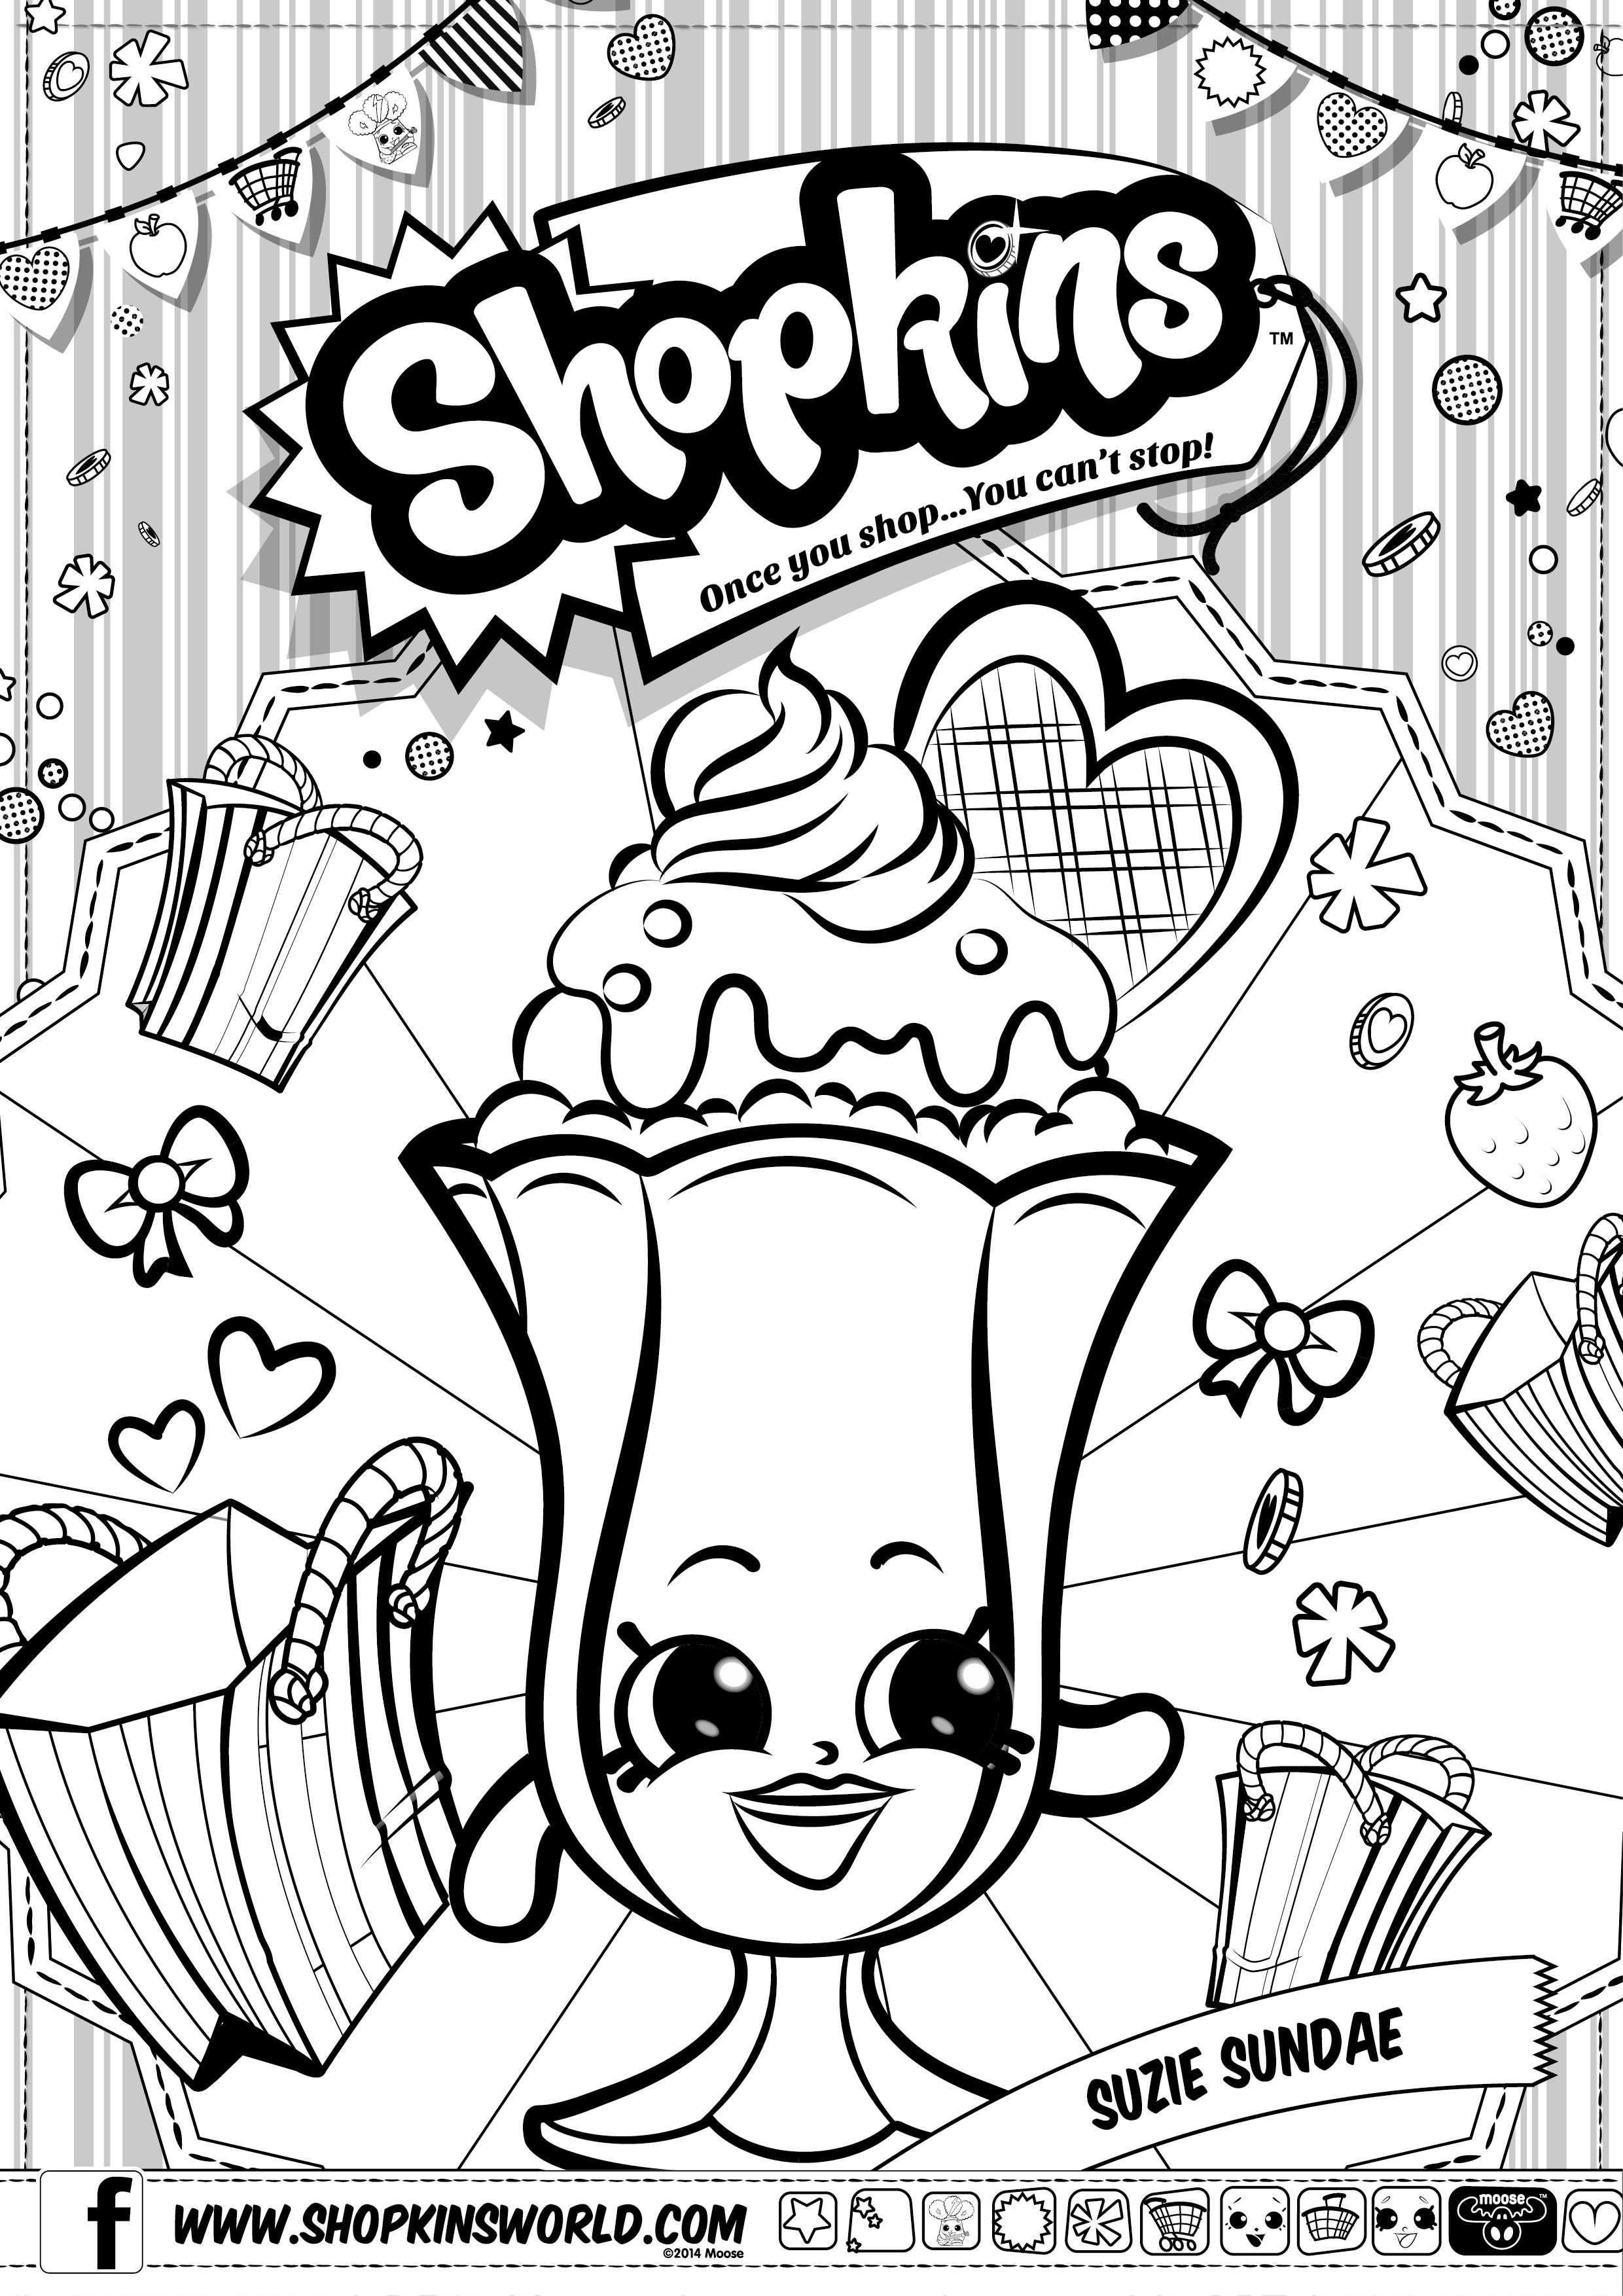 charlie and the chocolate factory pictures to print charlie and the chocolate factory coloring pages printable and to charlie pictures chocolate factory the print